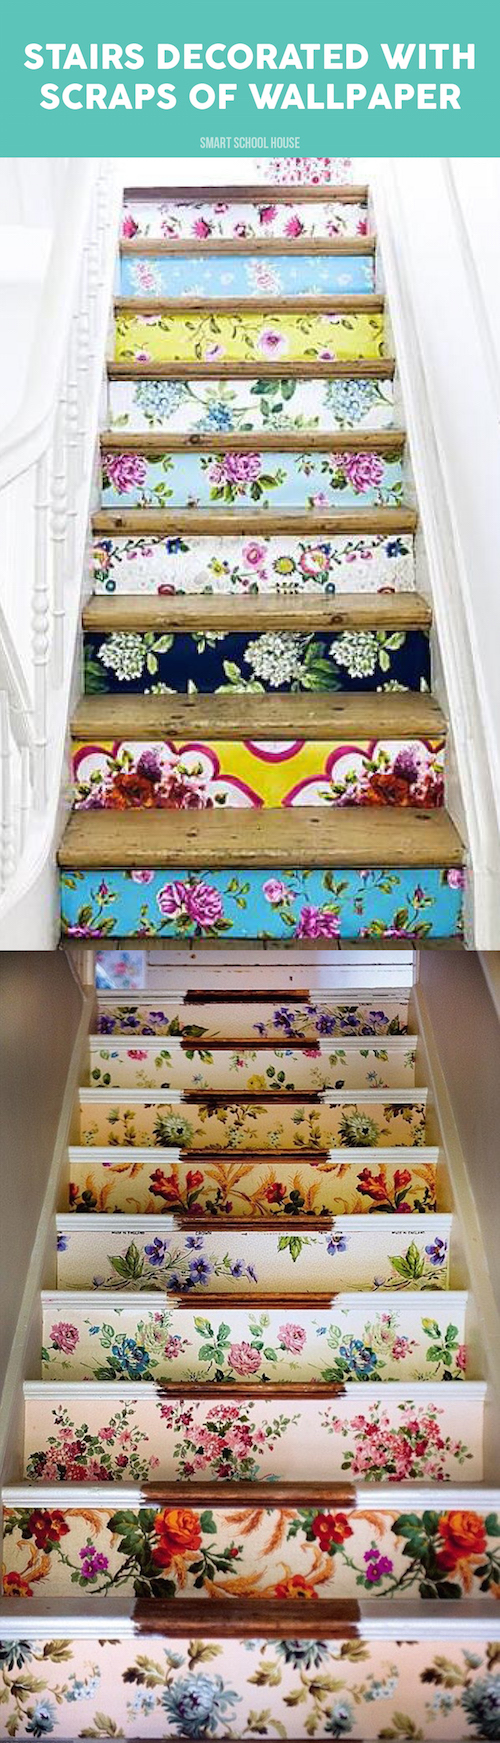 Wooden stairs decorated with scraps of wallpaper. WOW!